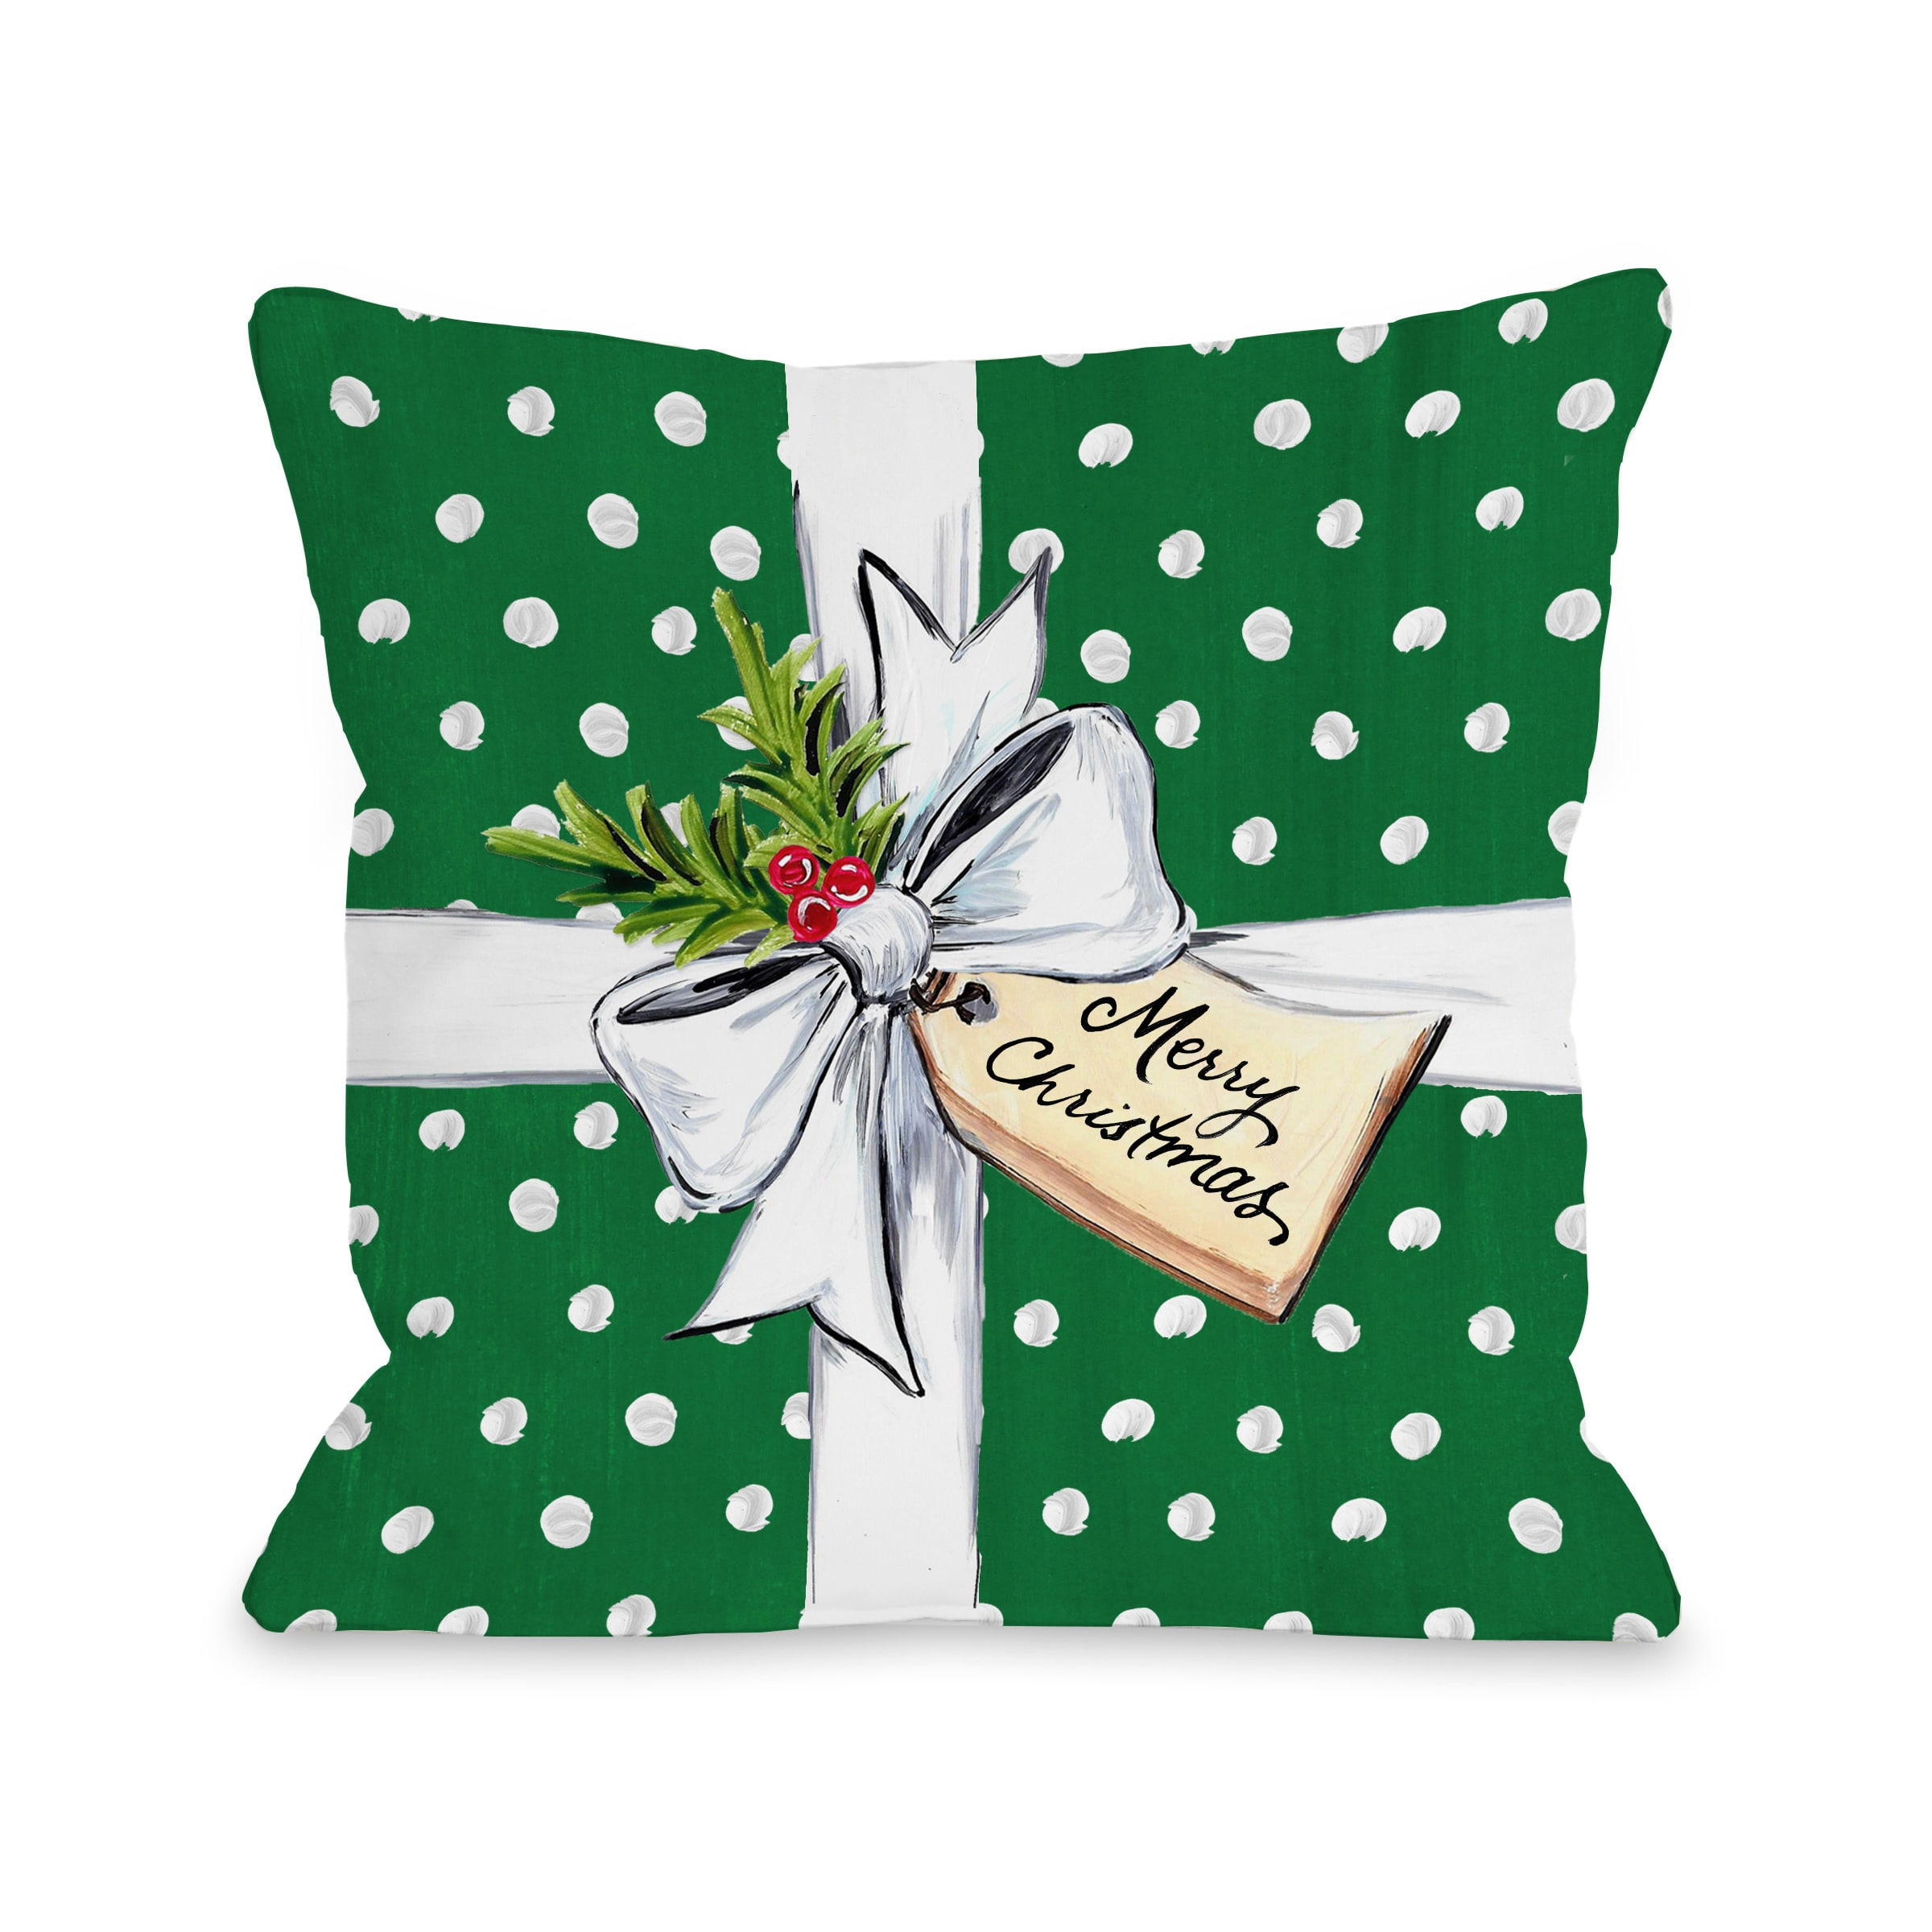 Polka Dot Bow - Green 18x18 Pillow by Timree Gold